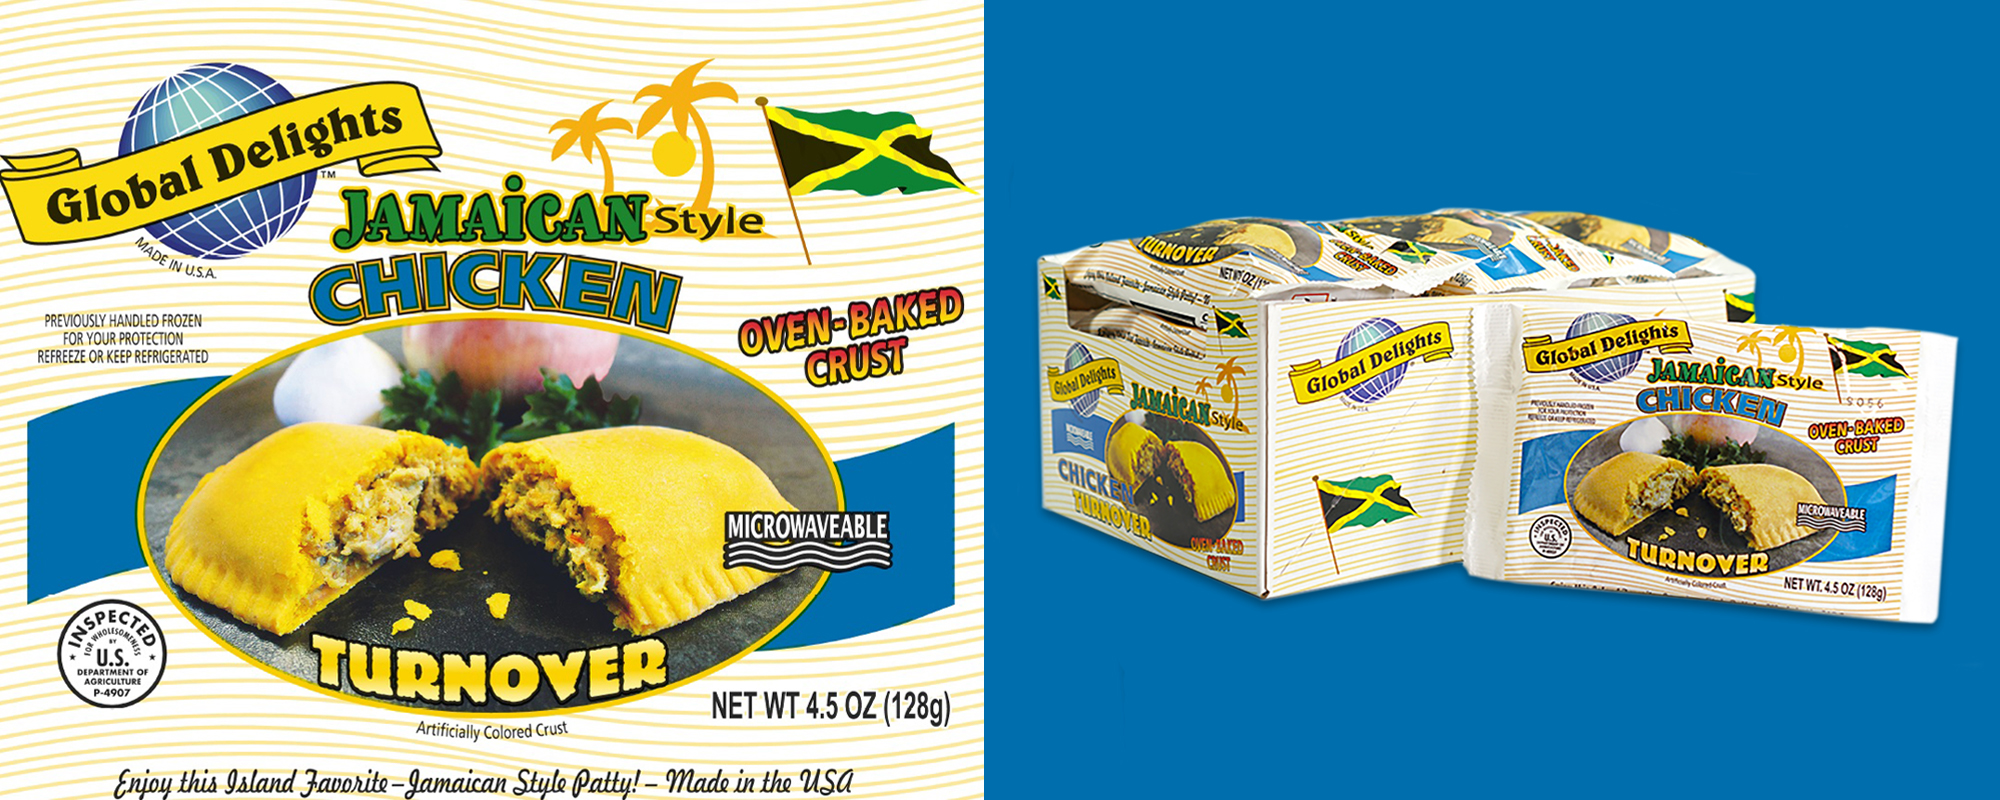 Jamaican Style Chicken Turnover - Caribbean Products